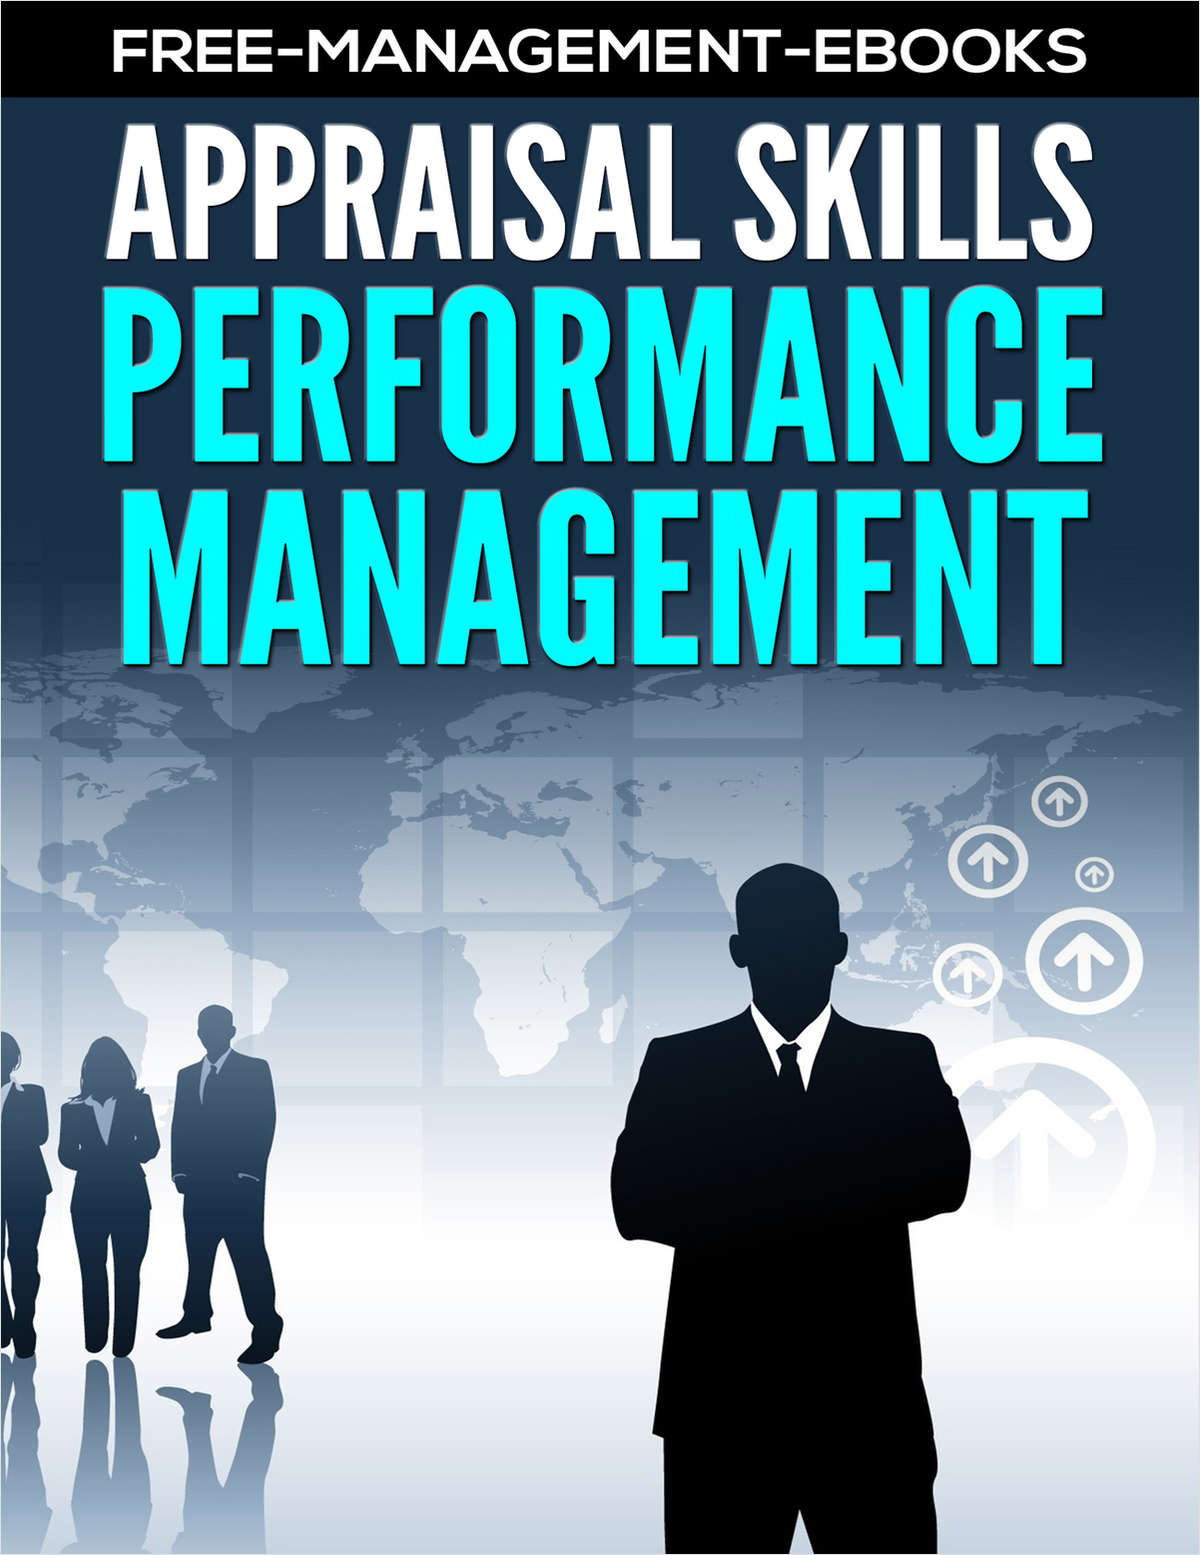 Performance Management - Developing Your Appraisal Skills